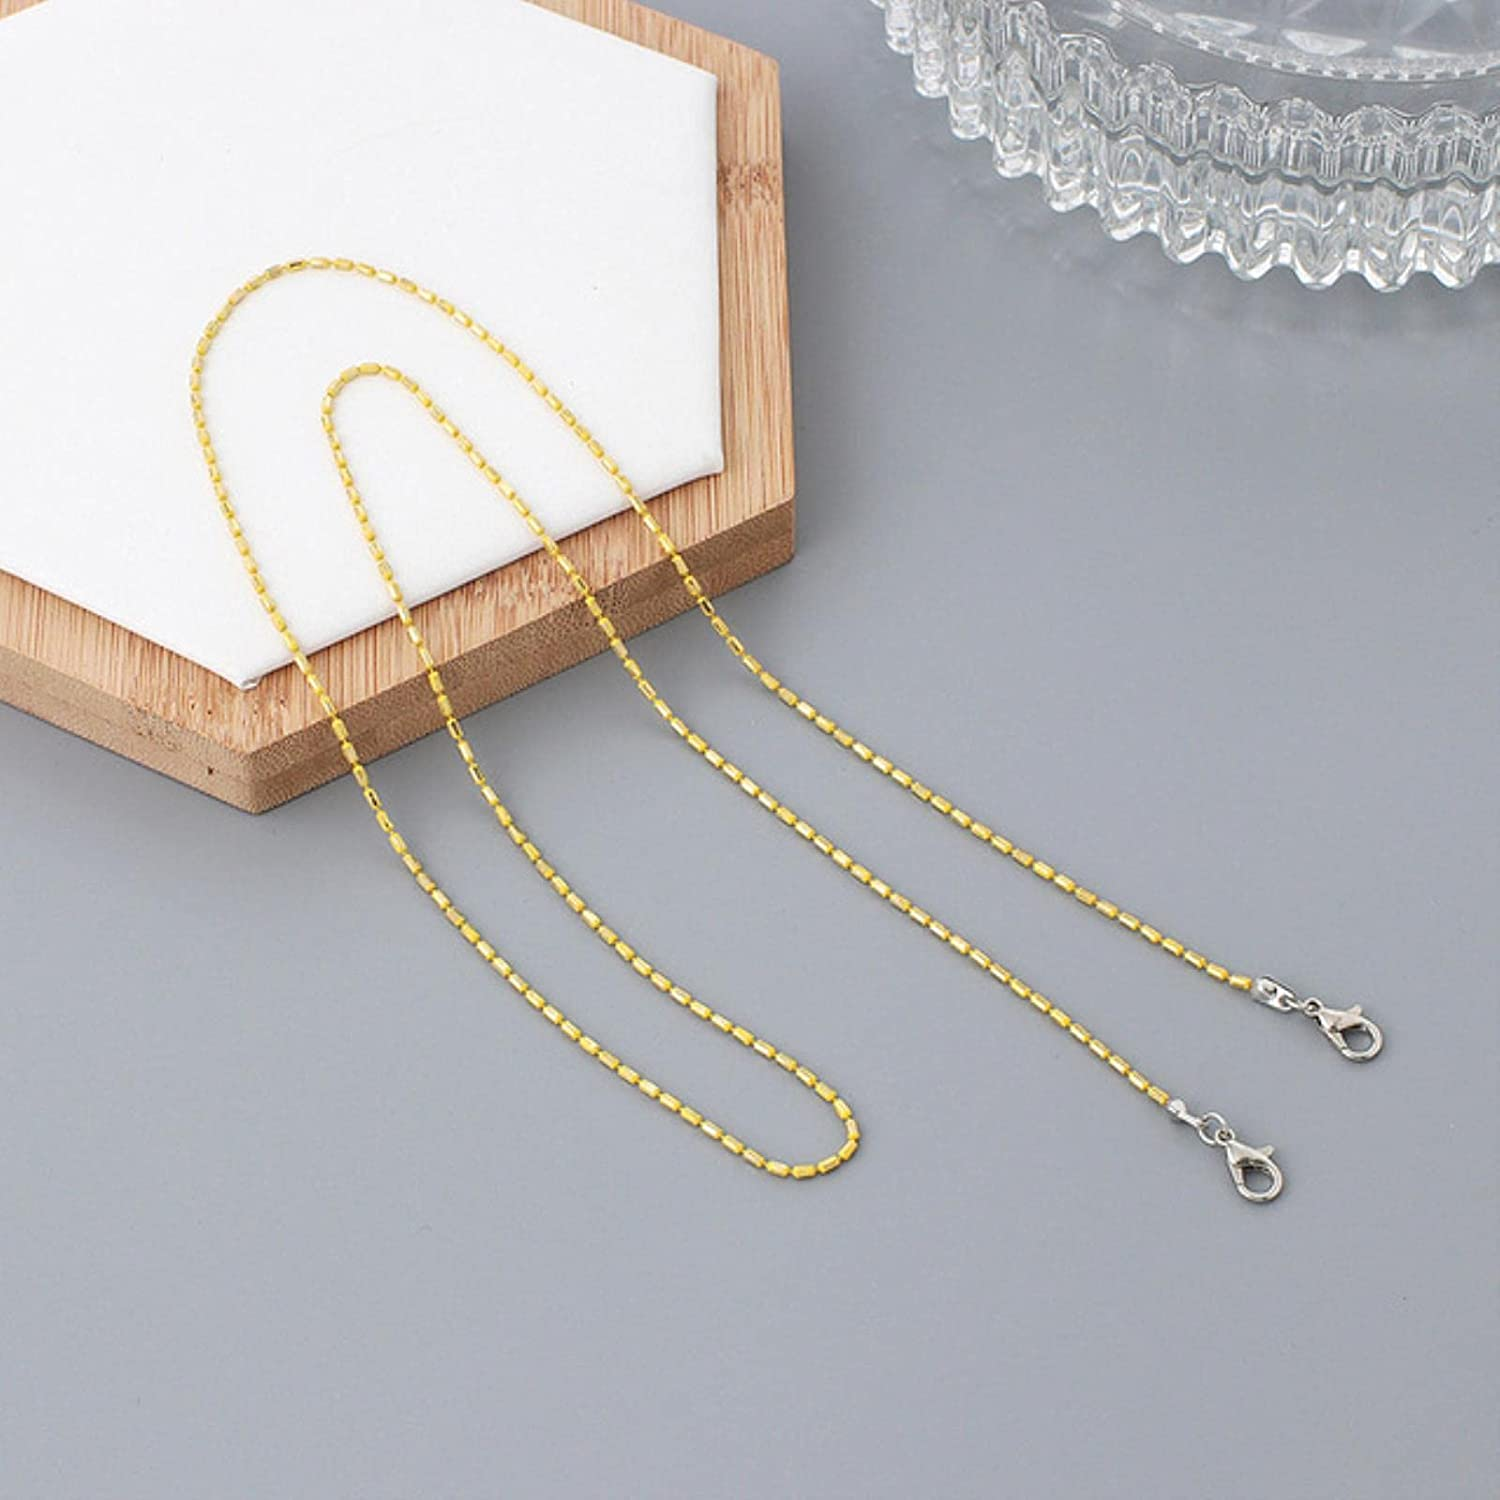 Wsnld Metal Sunglasses Chain Adjustable Ends Glasses Holder Retainer Rope Eyeglass Necklace Lanyard Cord Holders